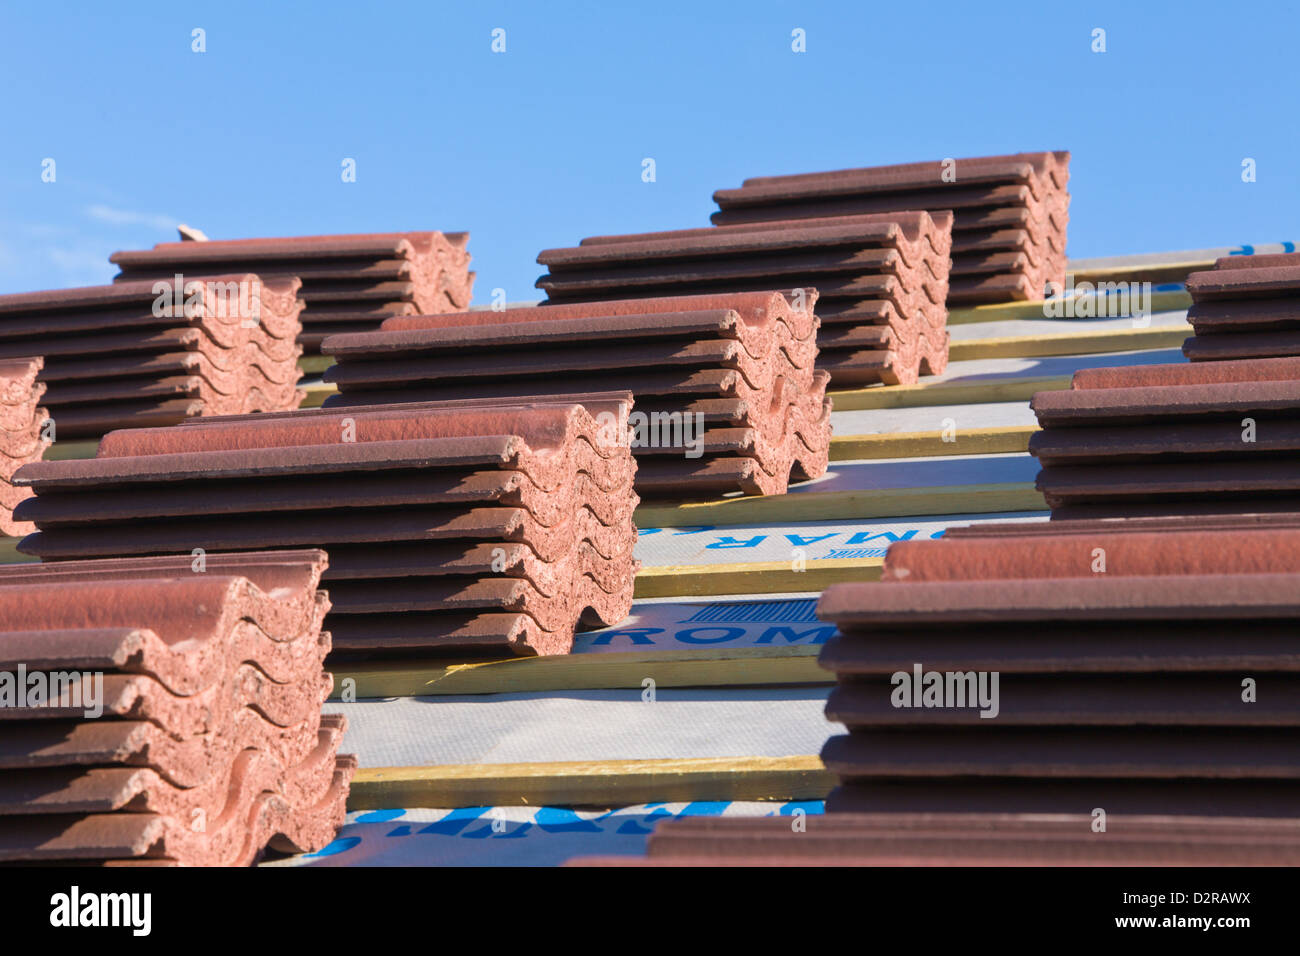 Stack Of Roof Tiles Stock Photos Amp Stack Of Roof Tiles